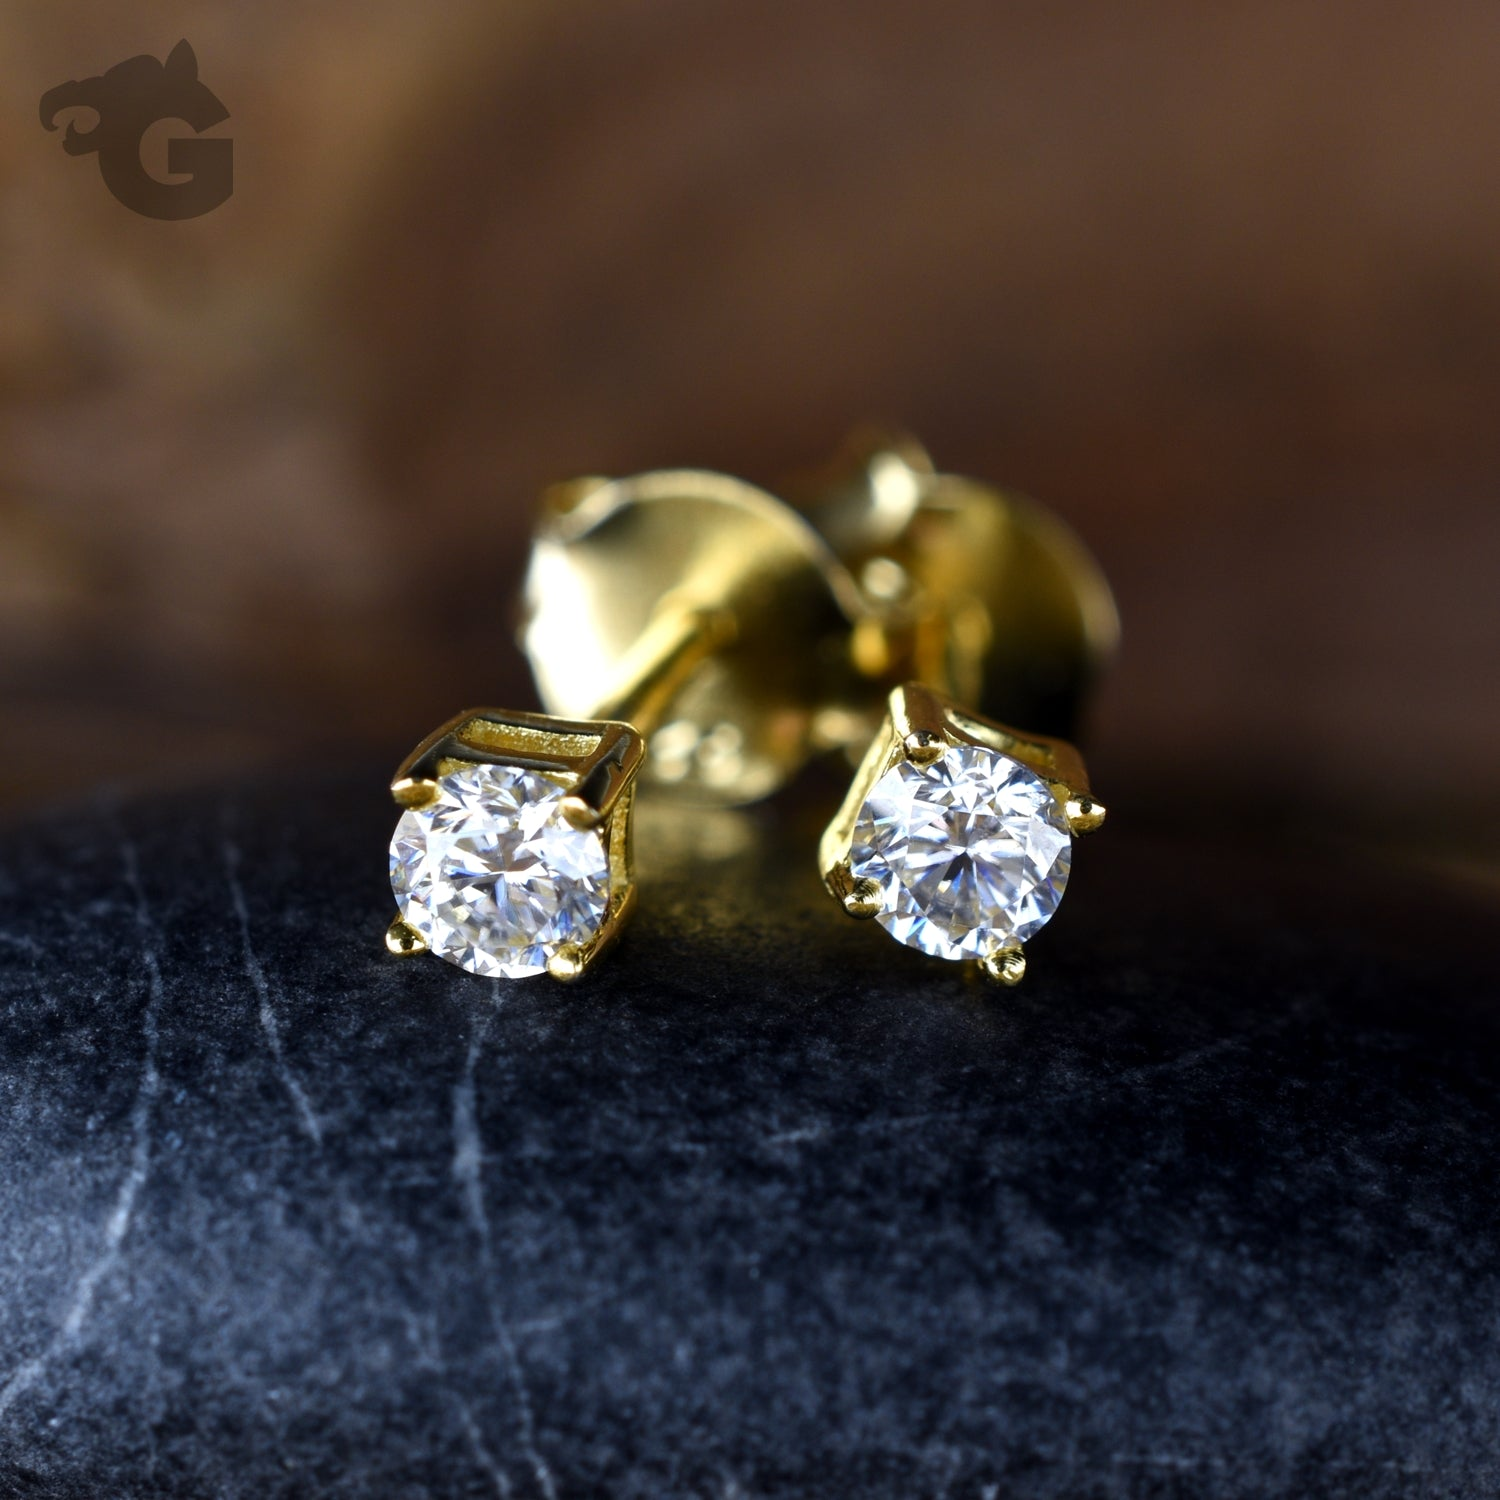 Moissanite stud earrings yellow gold 18K white colorless 3mm - Glermes.com